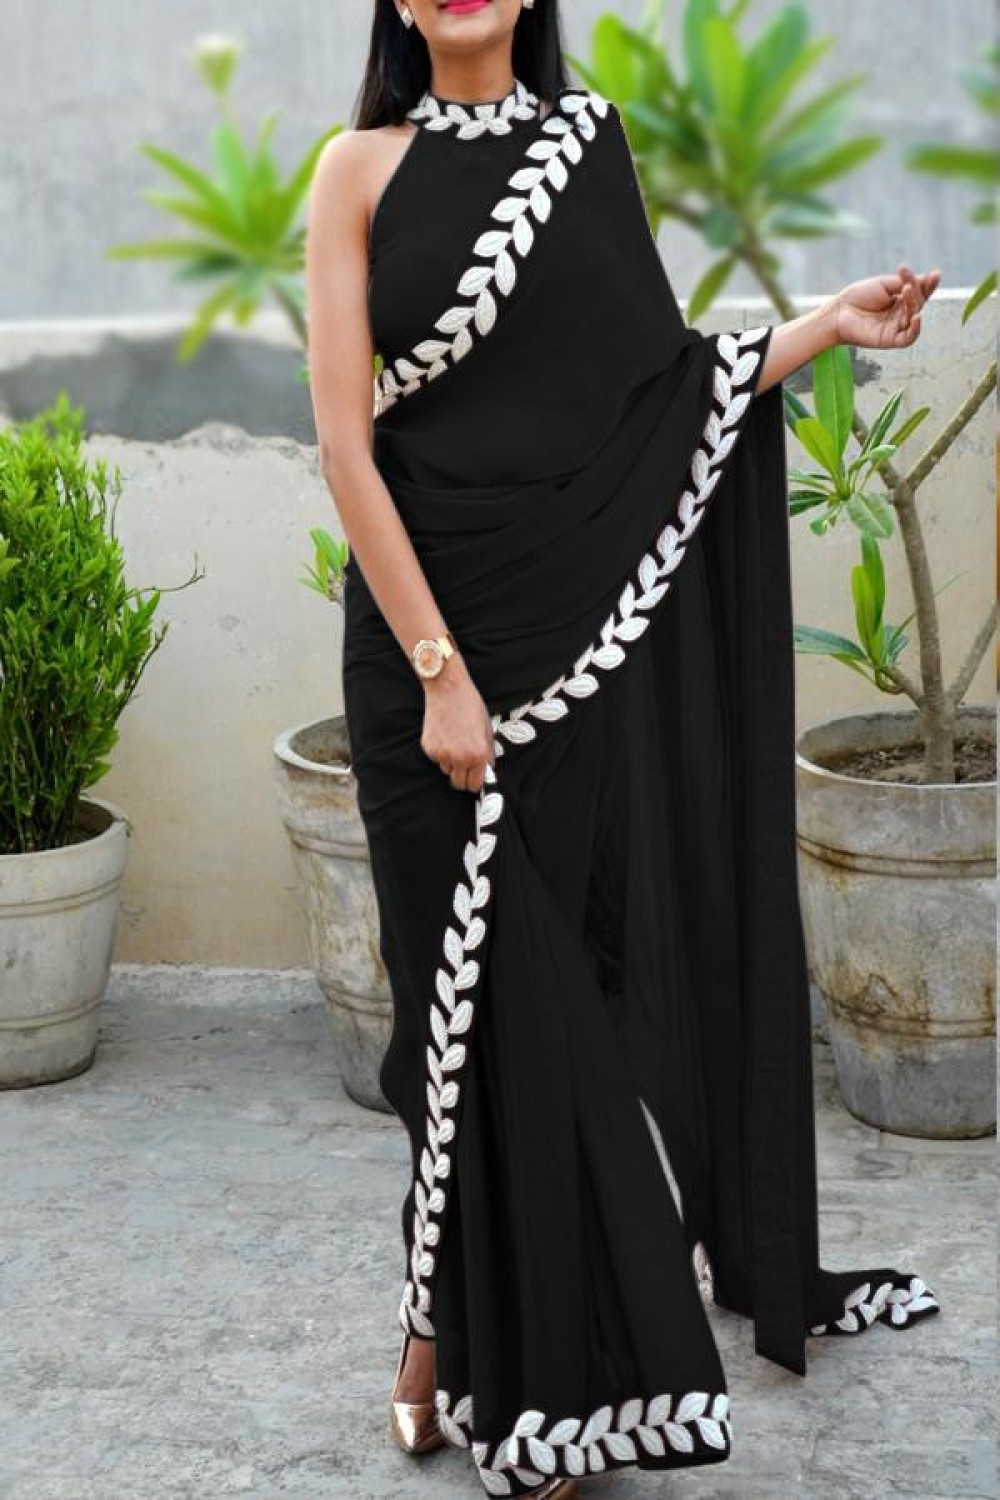 Stylish Appealing Black Saree With White Pattle Embroidery